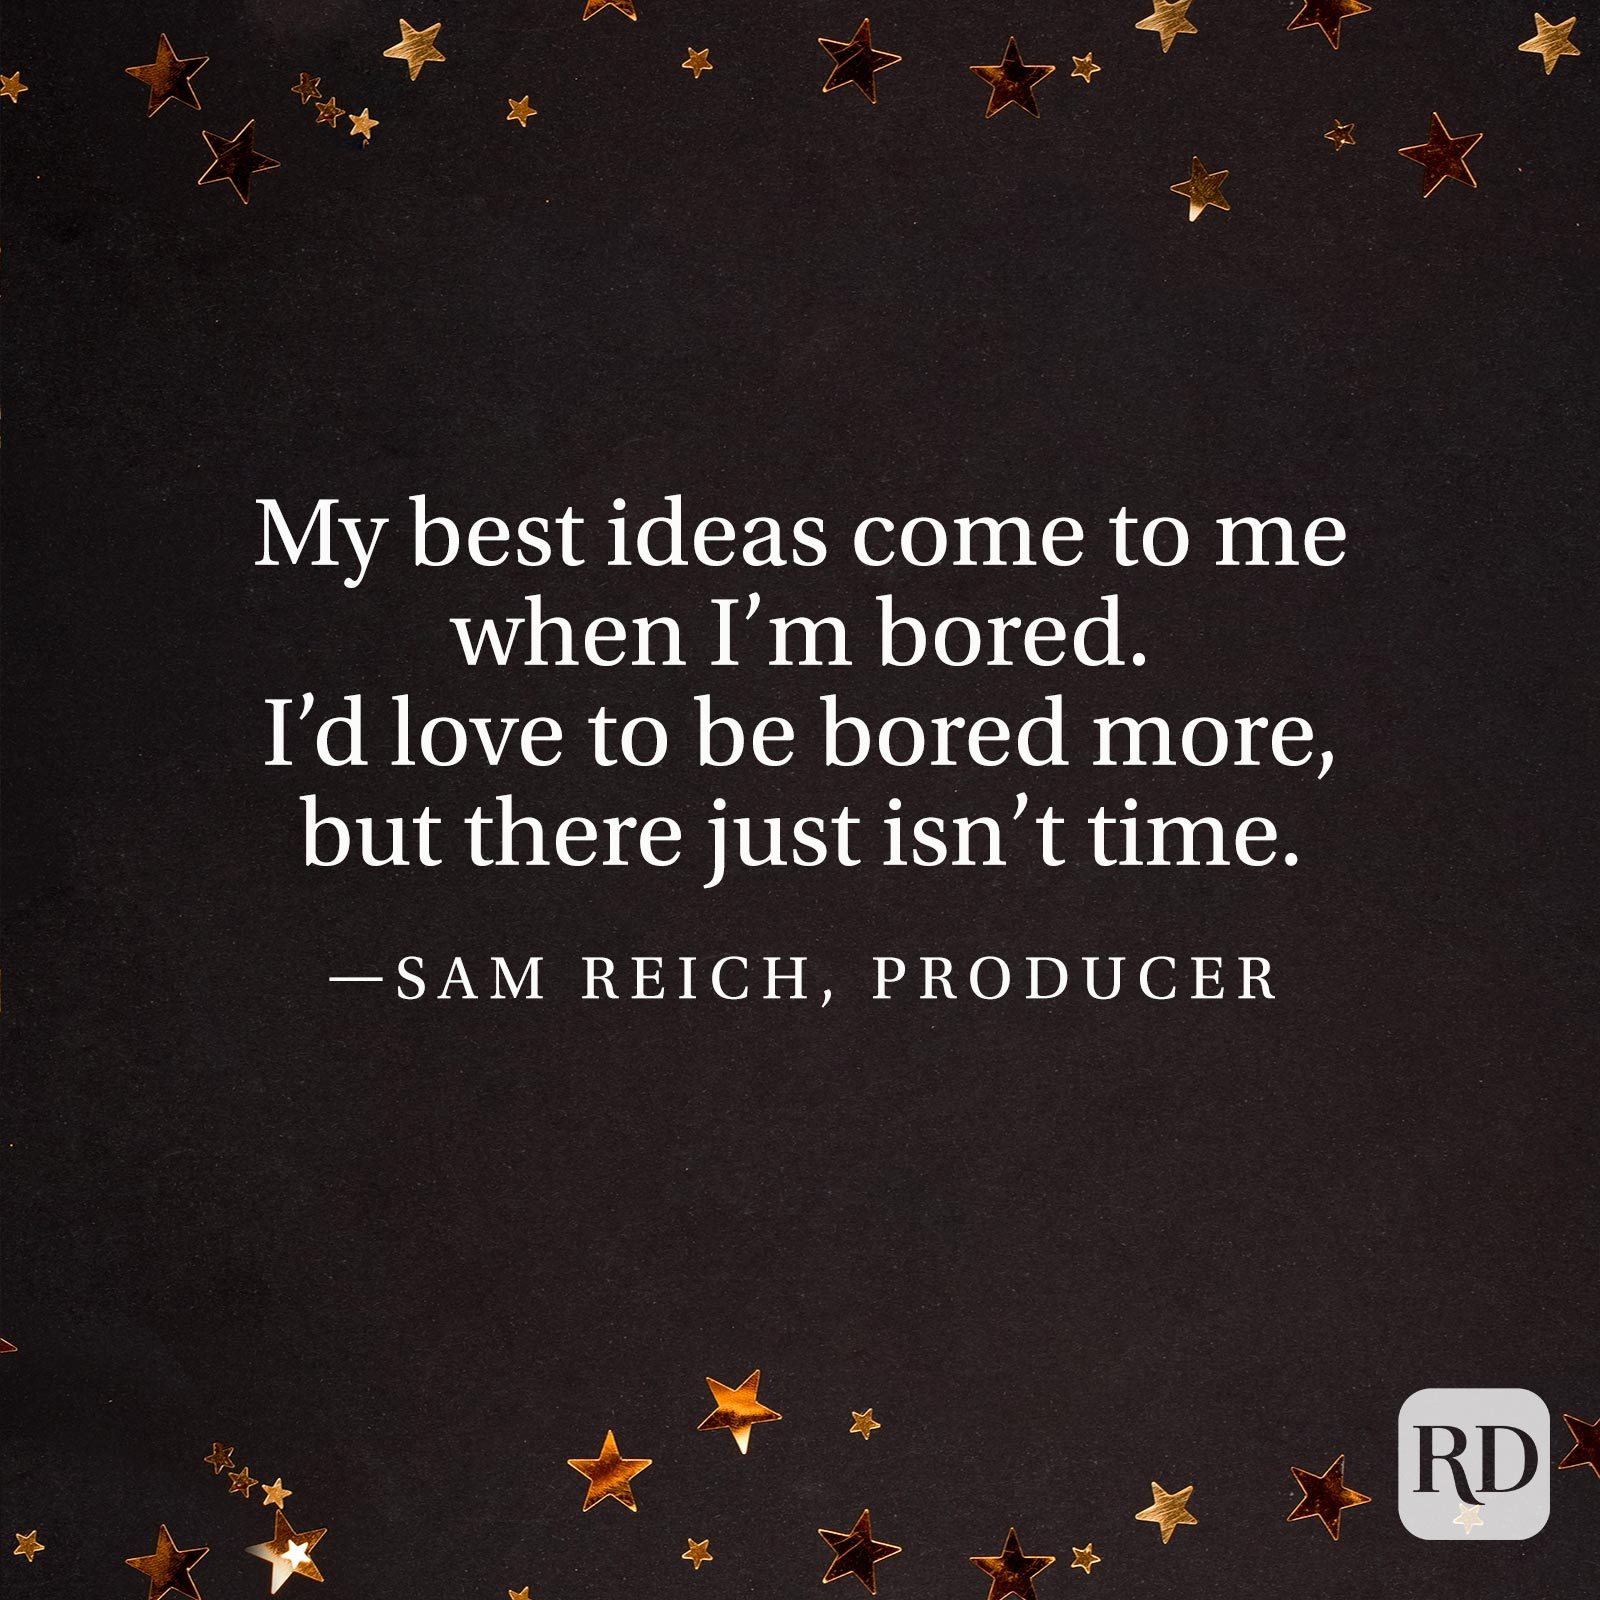 """My best ideas come to me when I'm bored. I'd love to be bored more, but there just isn't time."" —Sam Reich, producer"